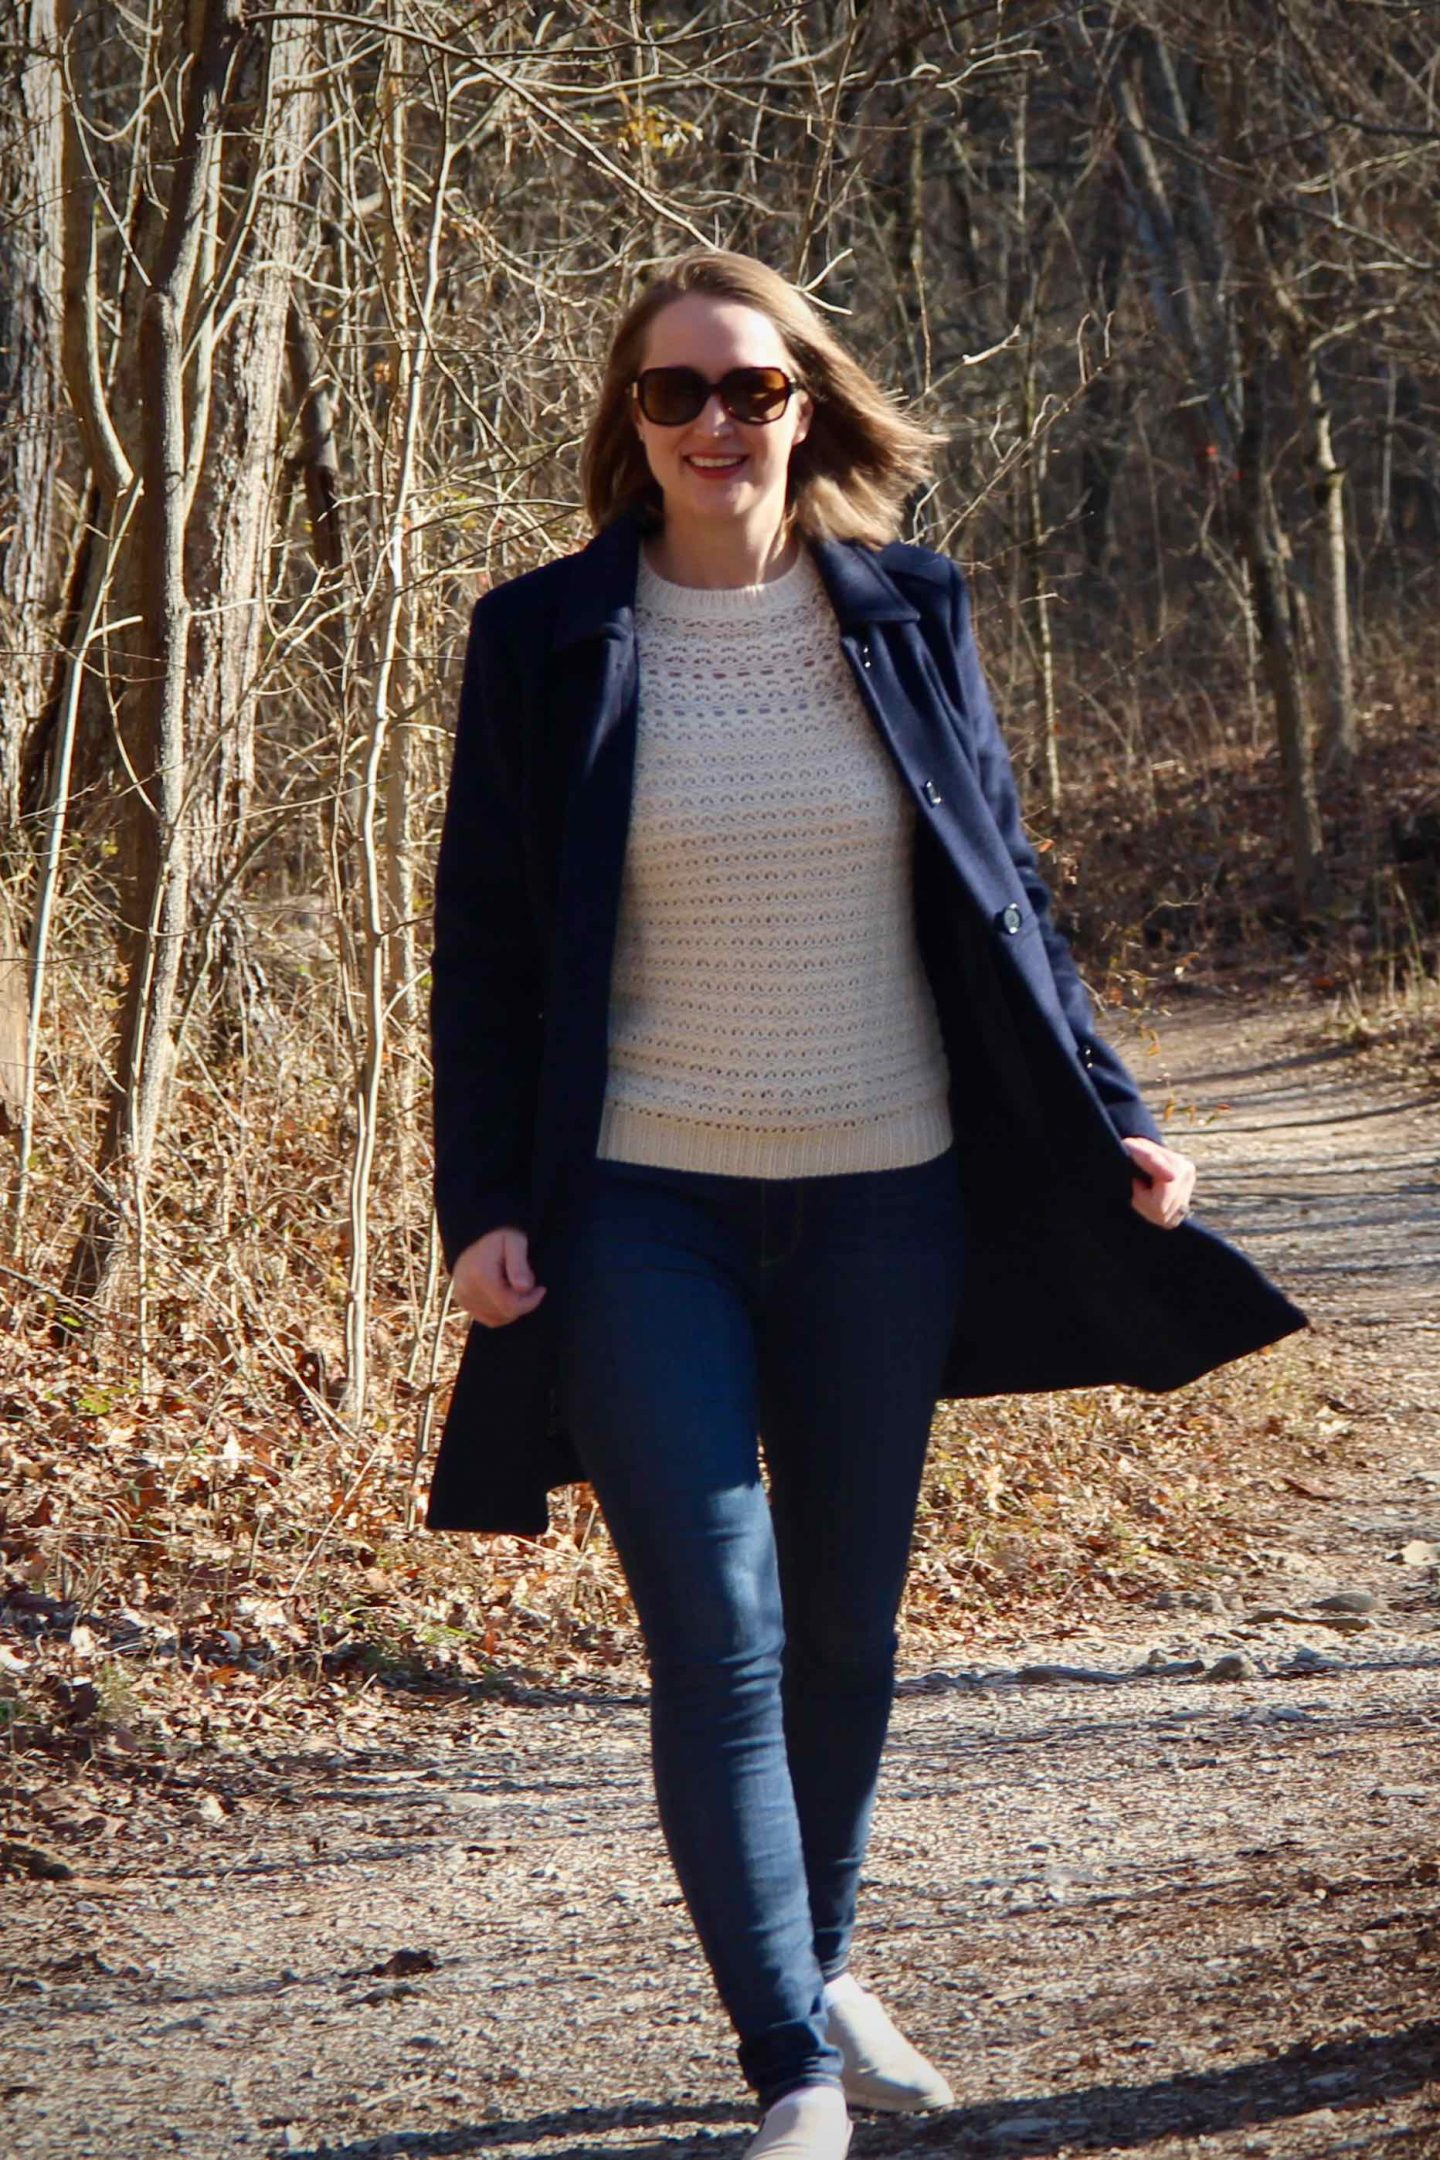 Preppy Winter Outfit Ideas | Walks through Sharon Woods | The Spectacular Adventurer